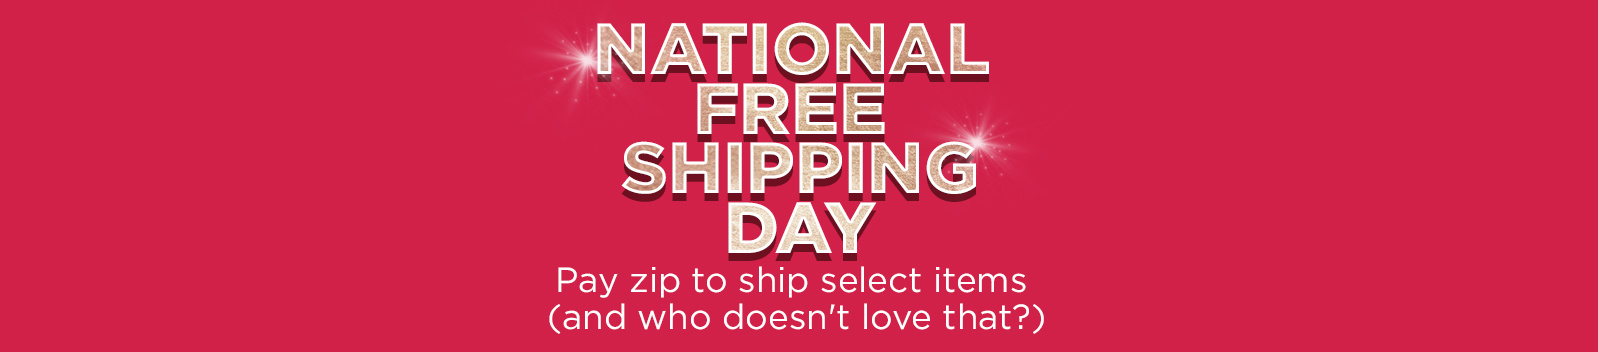 National Free Shipping Day  Pay zip to ship select items (and who doesn't love that?)